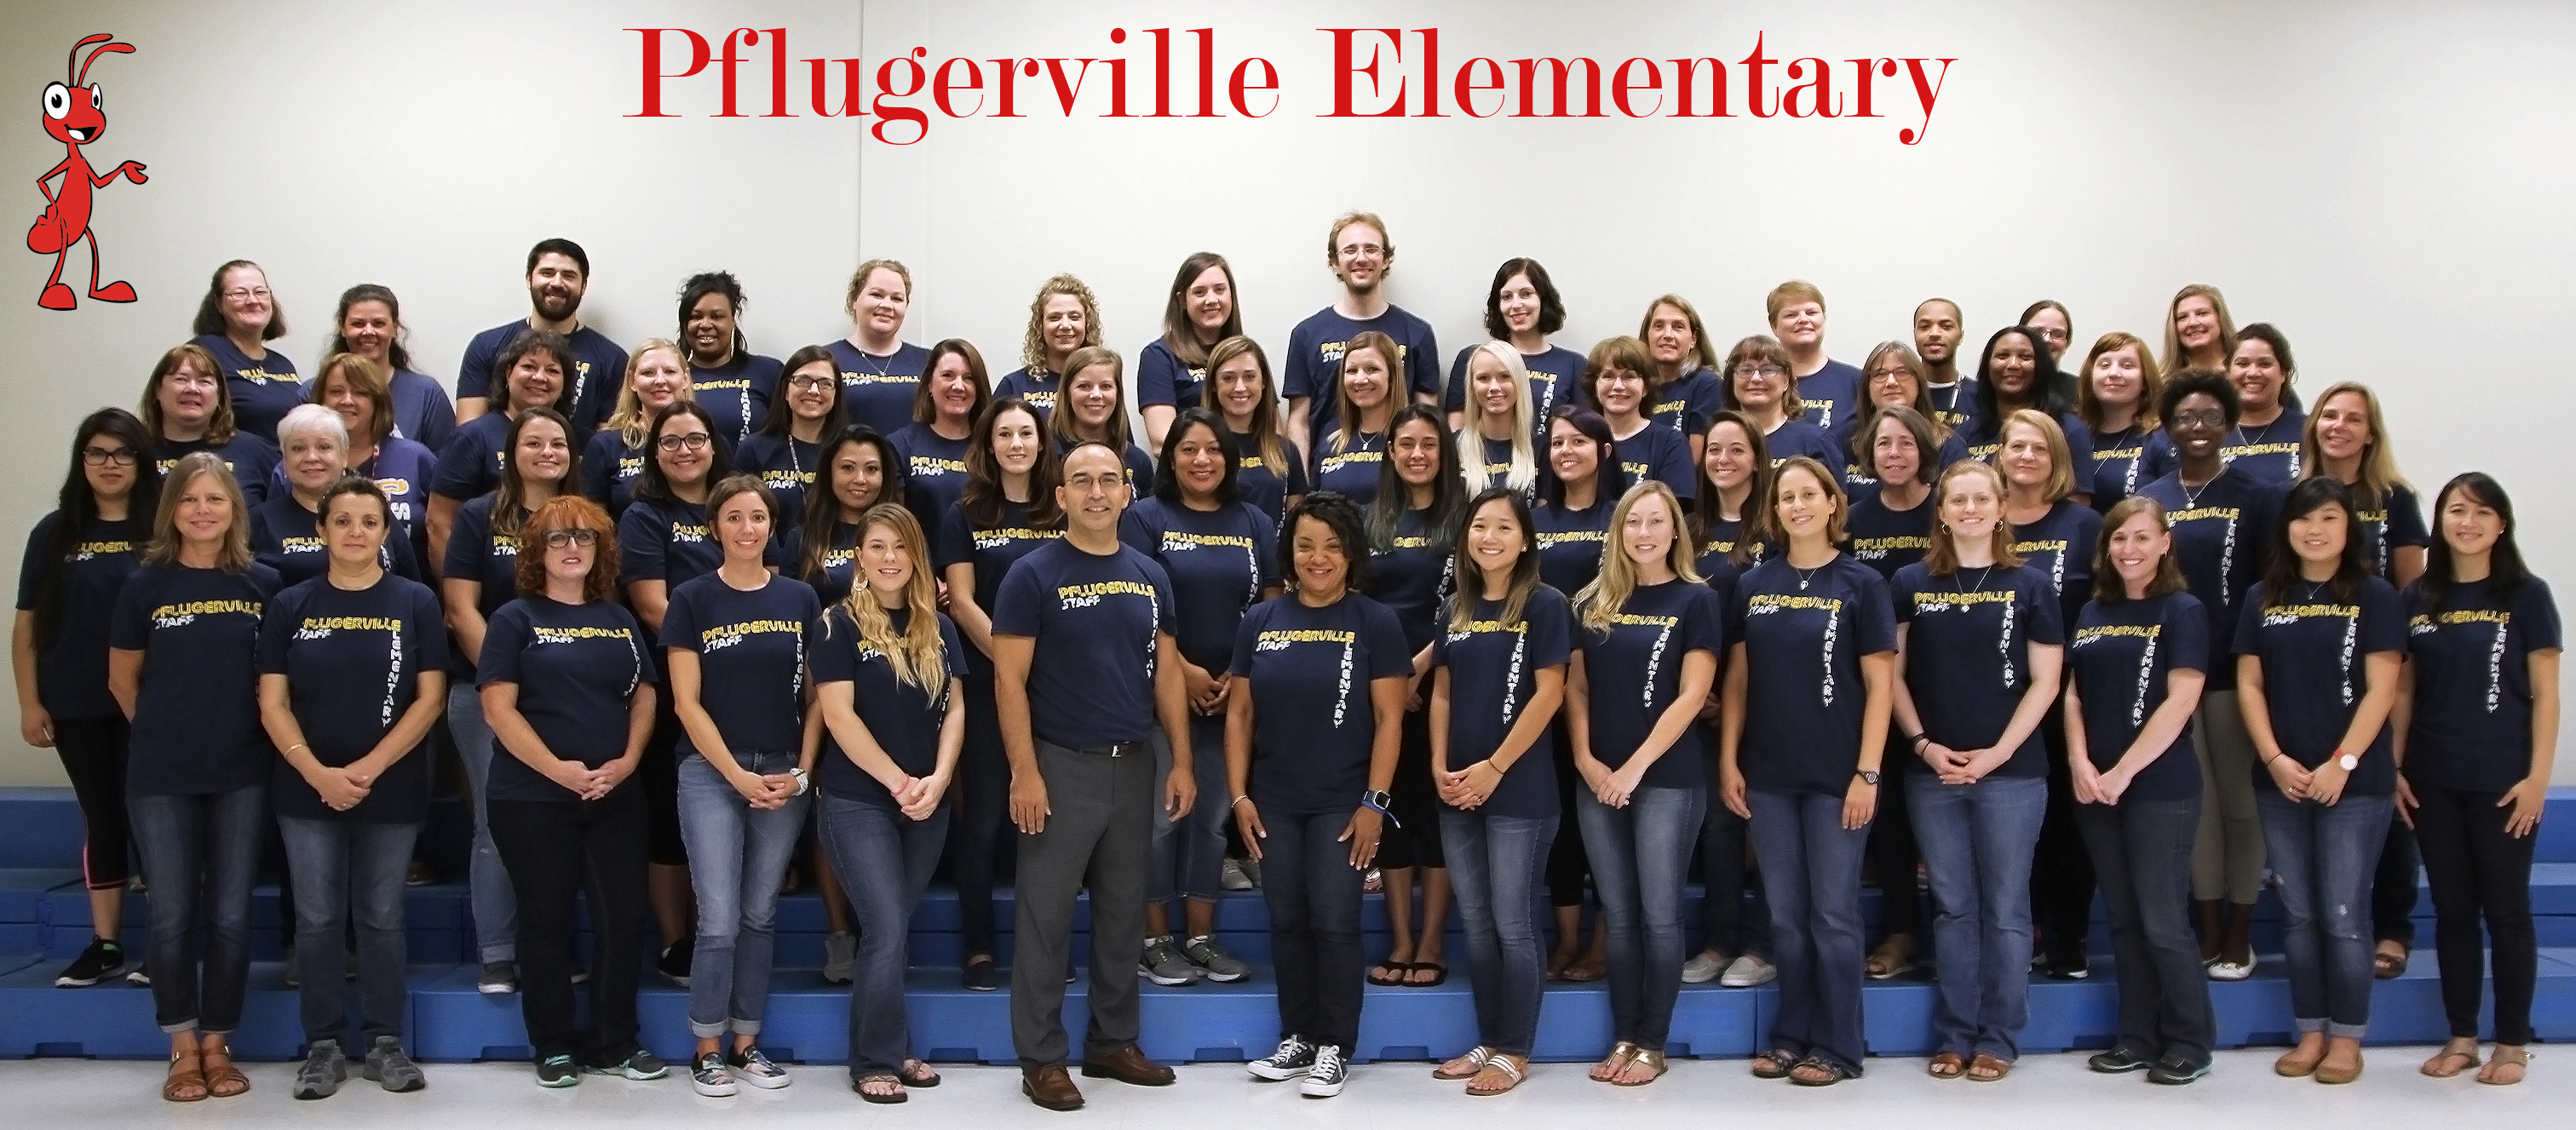 pflugerville elementary school    homepage